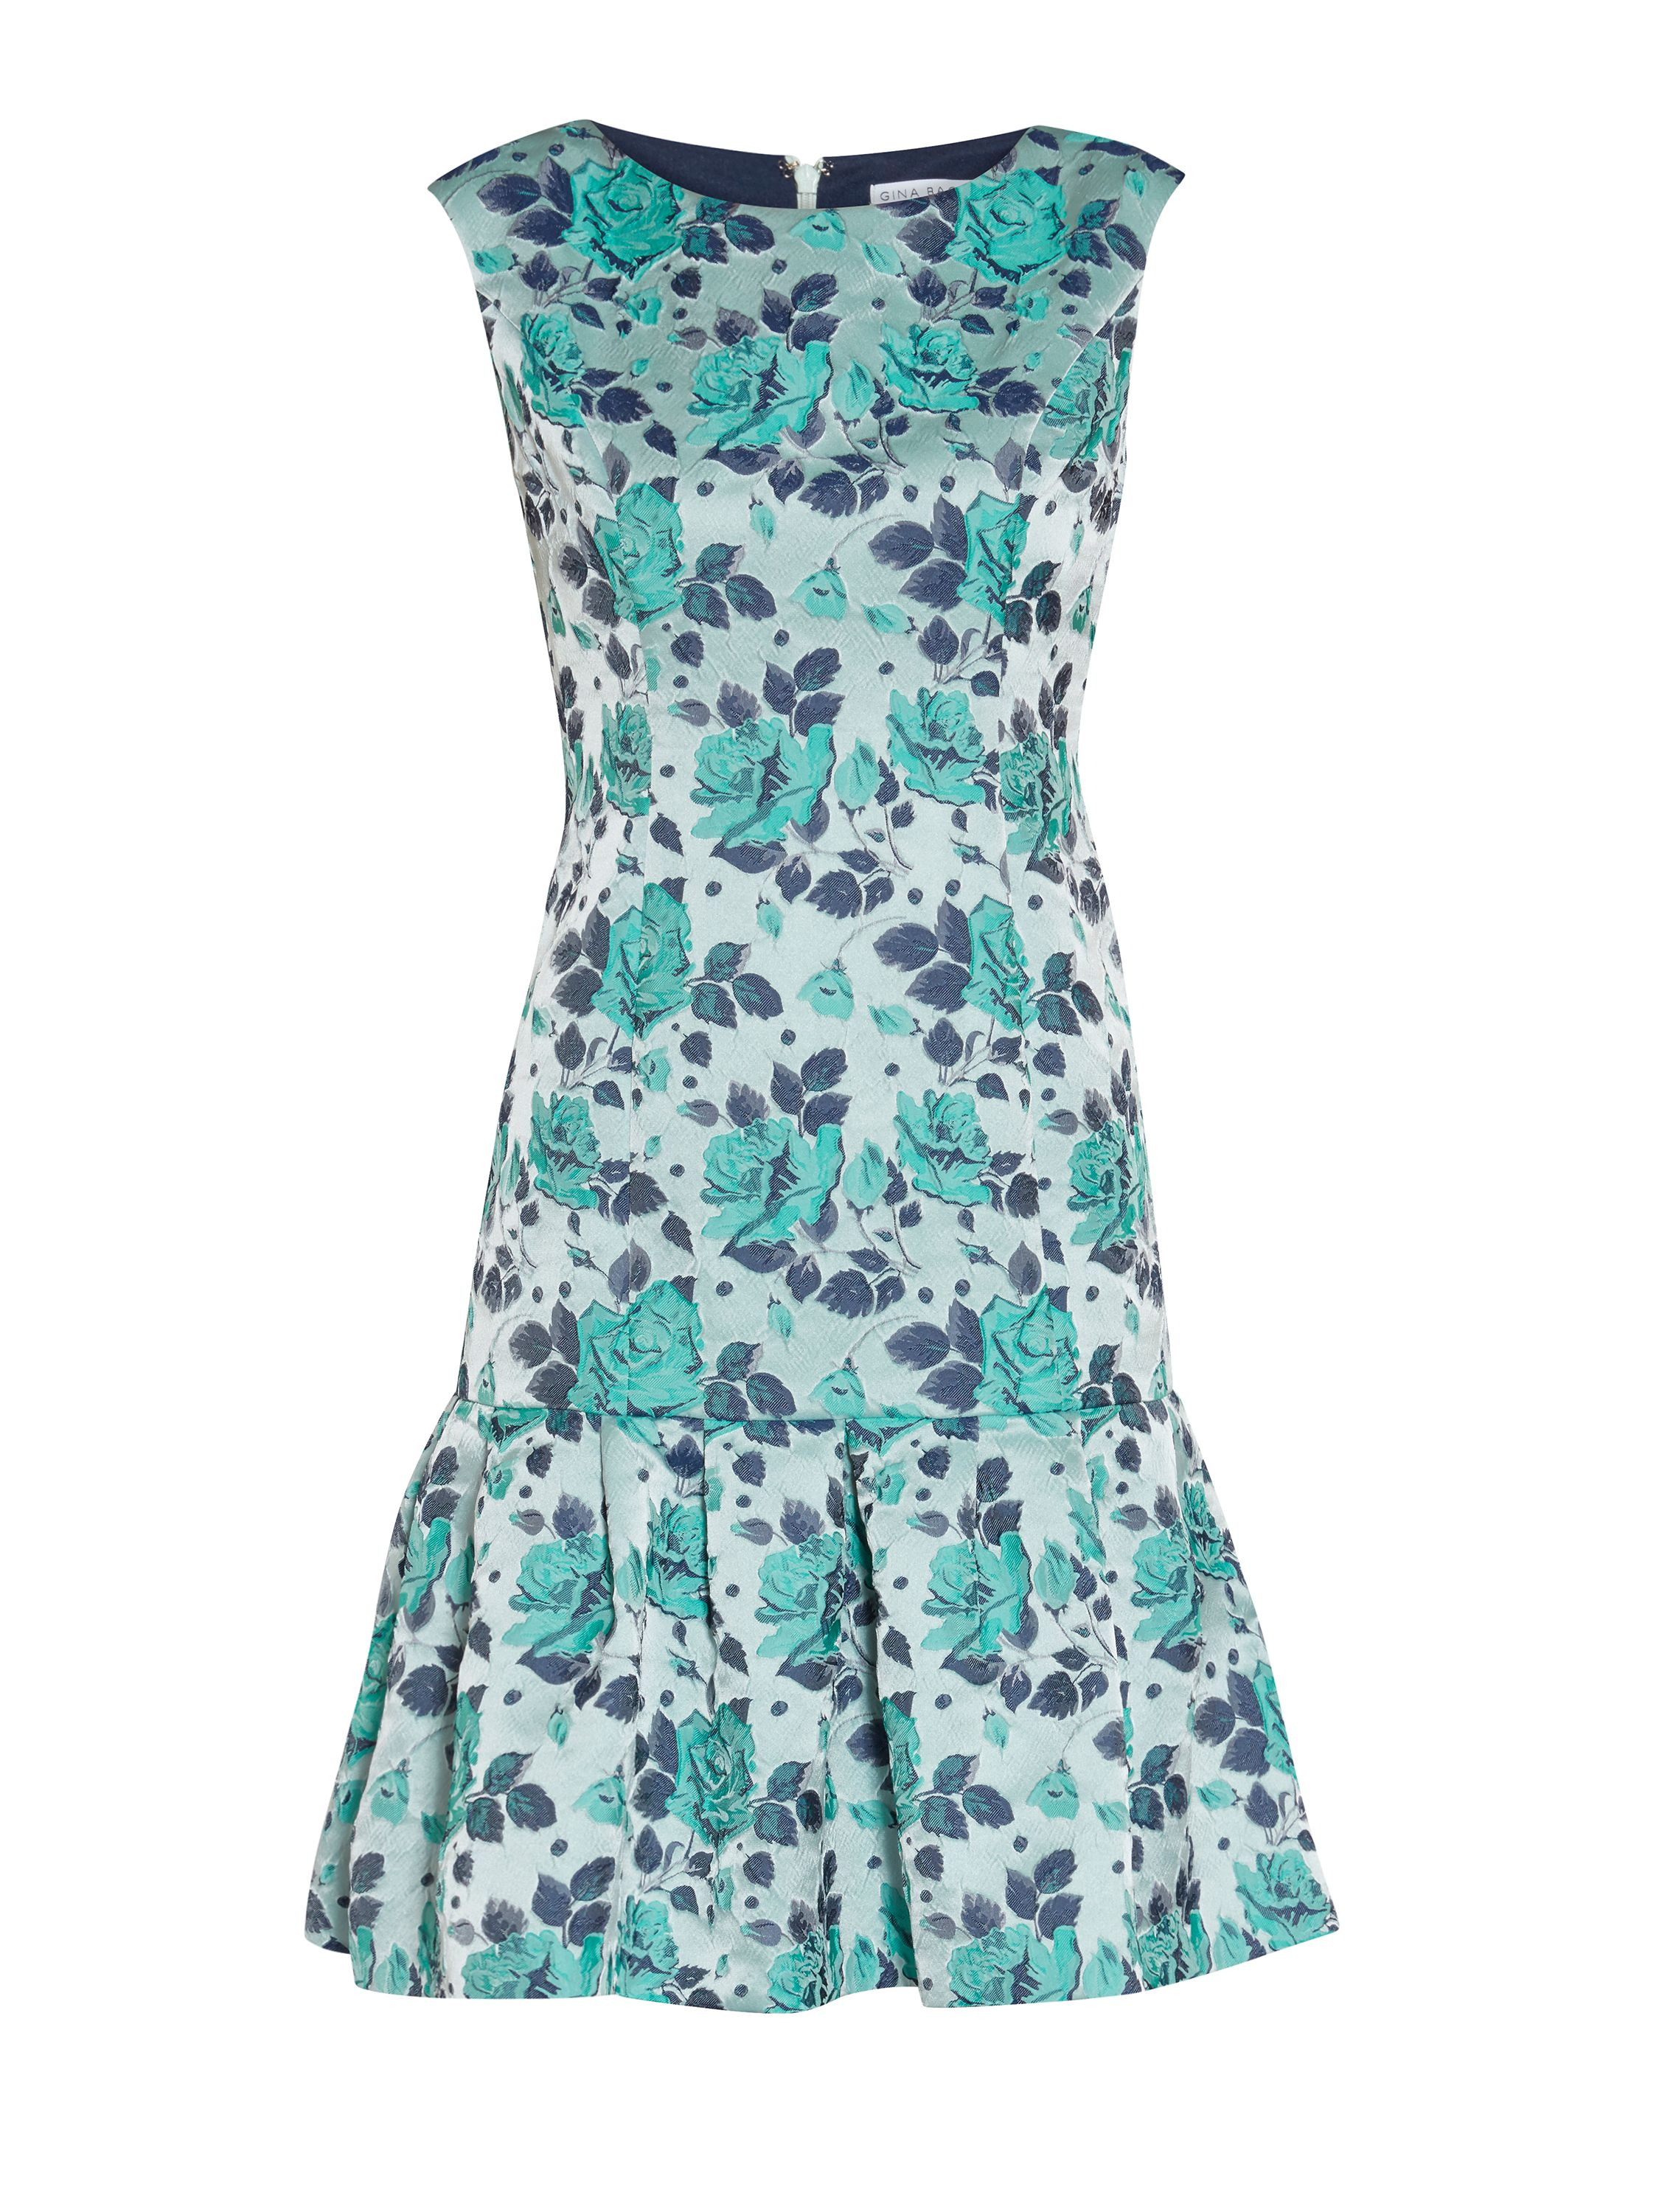 Gina Bacconi Navy green floral jacquard dress, Green